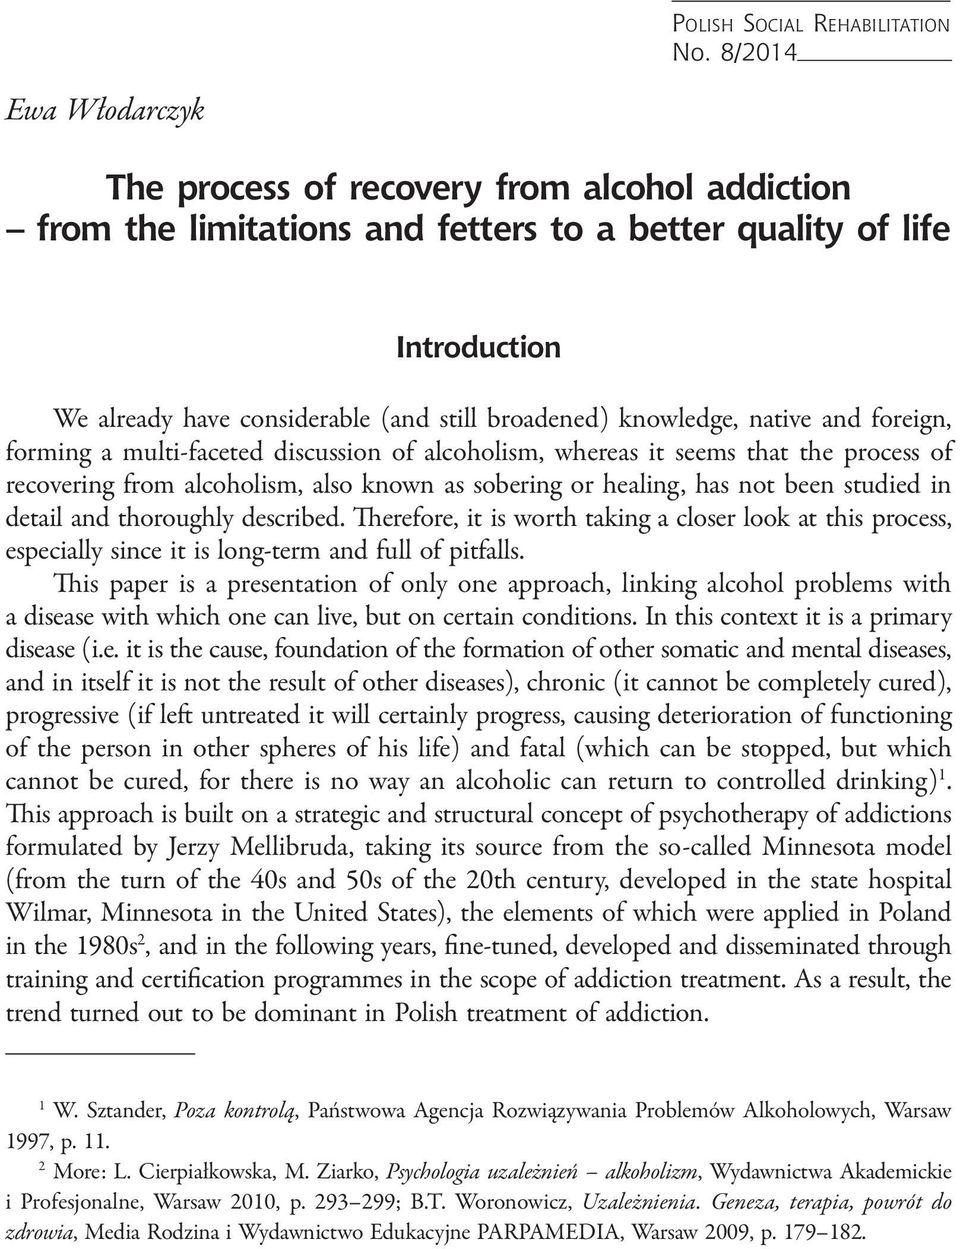 knowledge, native and foreign, forming a multi-faceted discussion of alcoholism, whereas it seems that the process of recovering from alcoholism, also known as sobering or healing, has not been